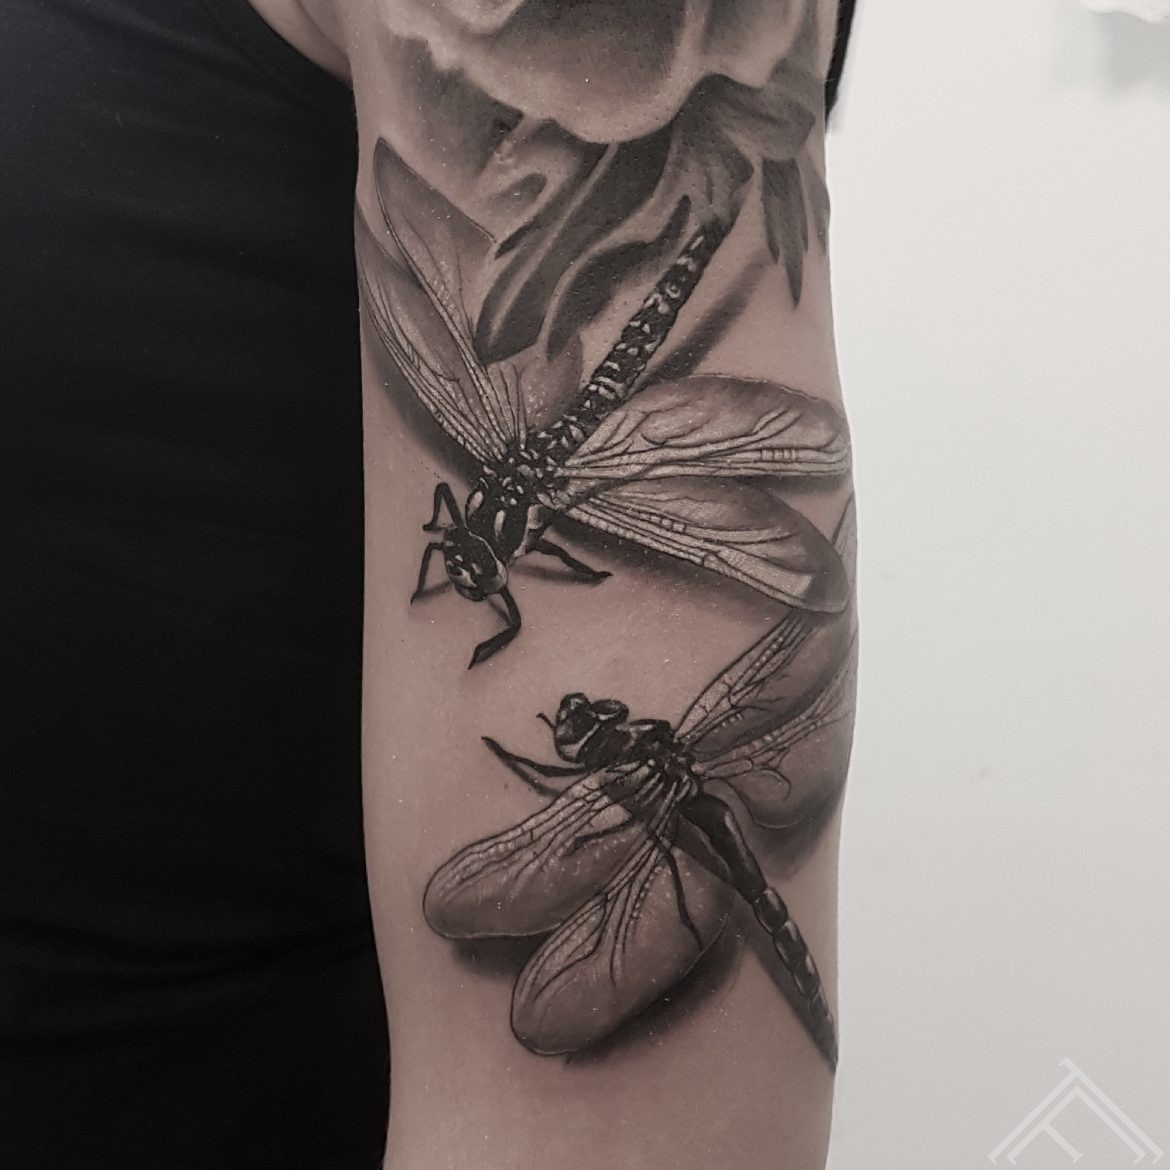 dragonfly-tattoo-martinssilins-tattoofrequency-riga